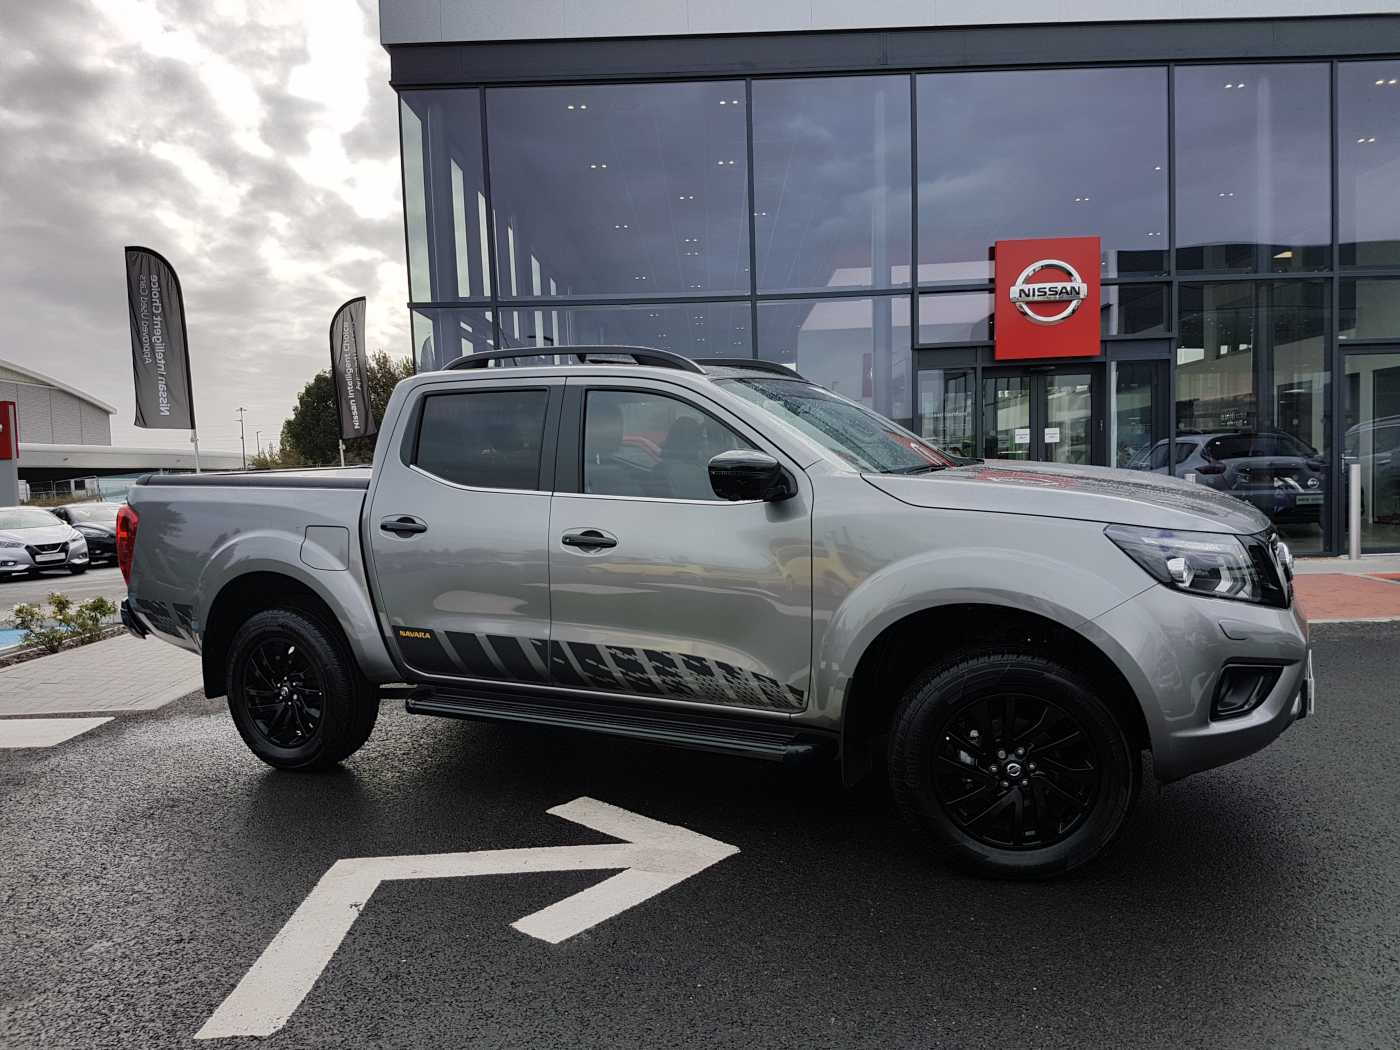 Nissan Navara Grey For Sale In Dartford Nissan Used Cars